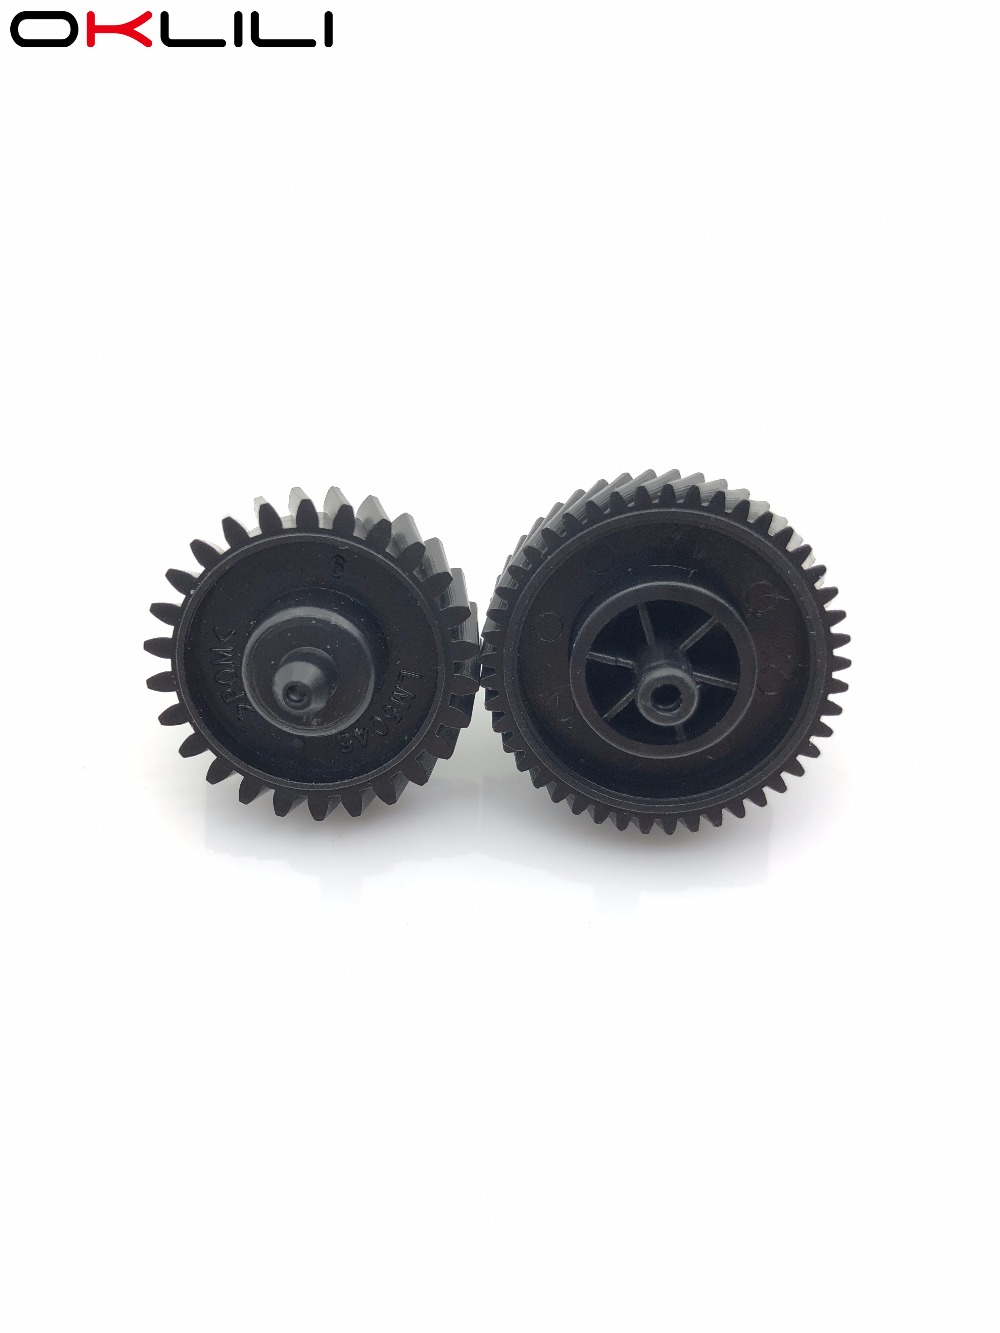 50X LU702000 Drive Gear kit for Brother DCP8060 DCP8065 DCP8070 DCP8080 DCP8085 HL5240 HL5250 HL5270 HL5280